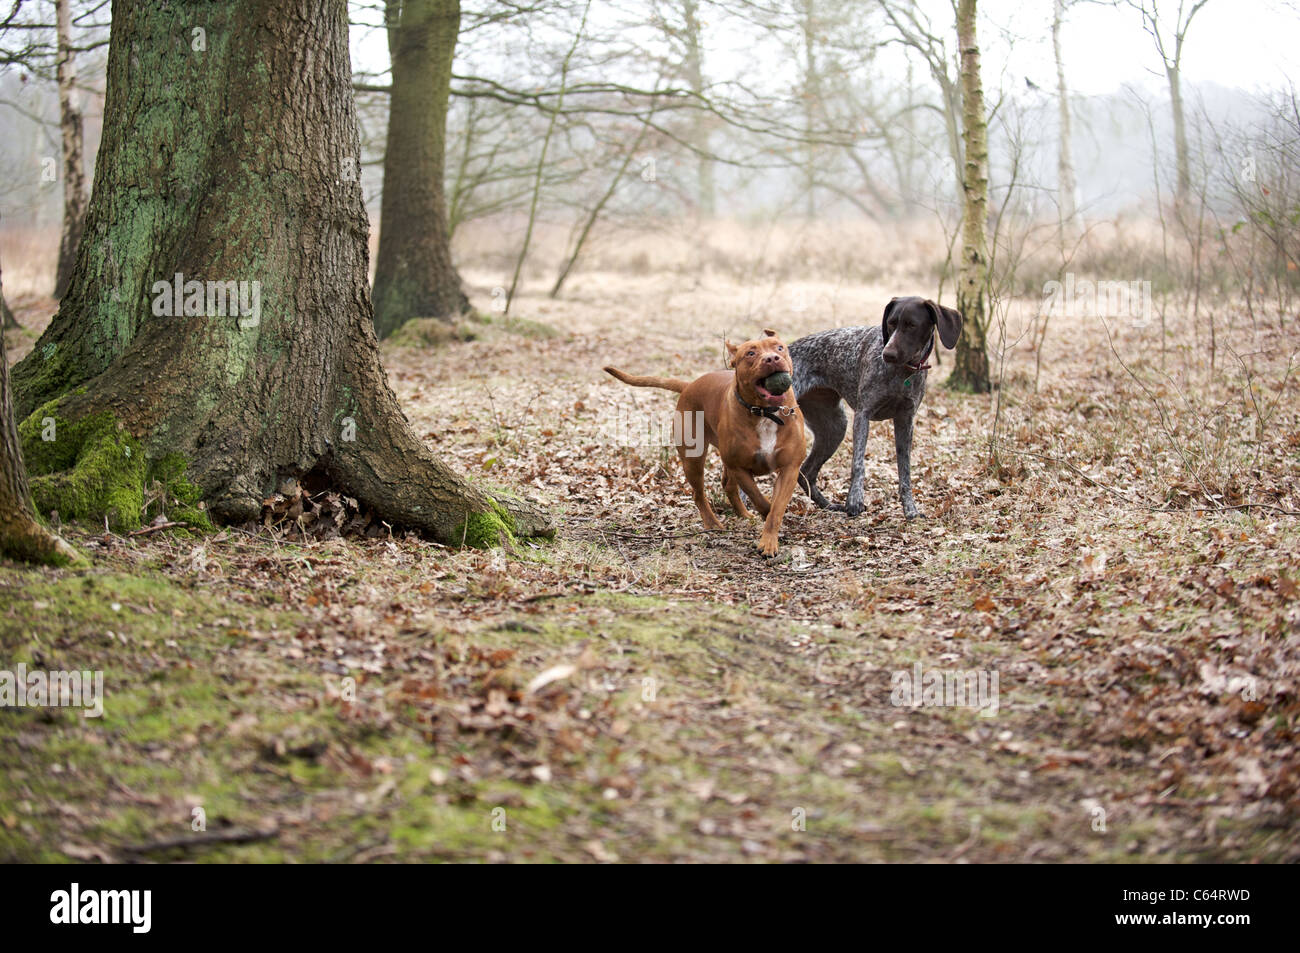 A Bull Terrier playing ball with a German Pointer - Stock Image